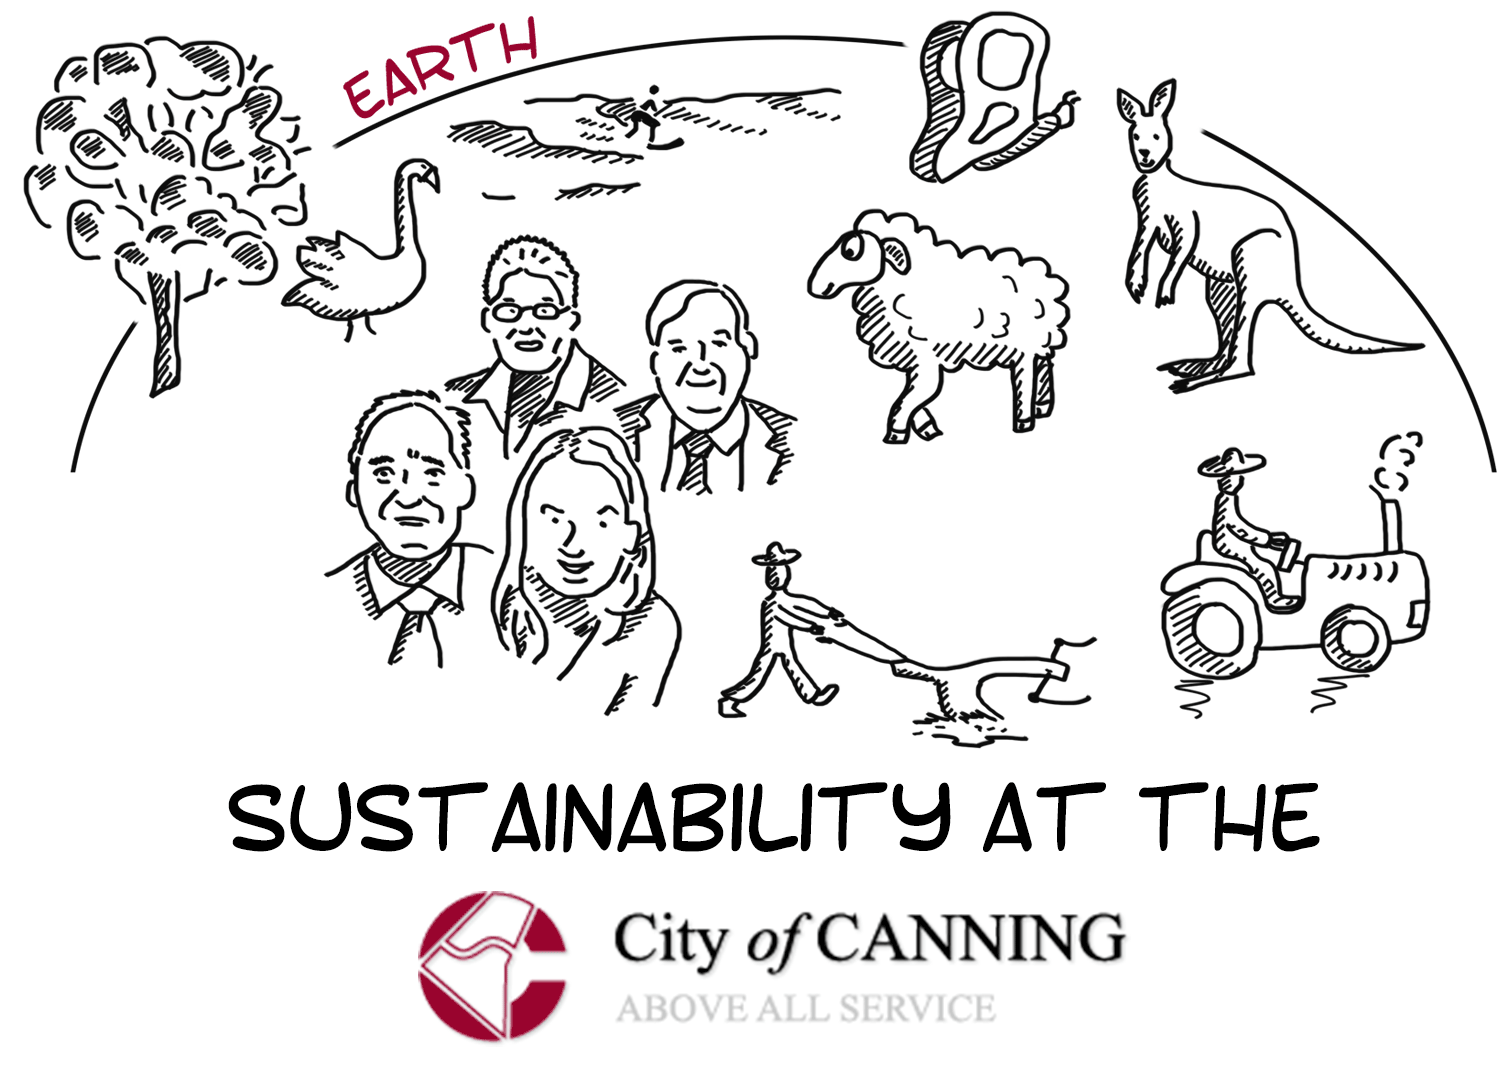 Sustainability at the City of Canning